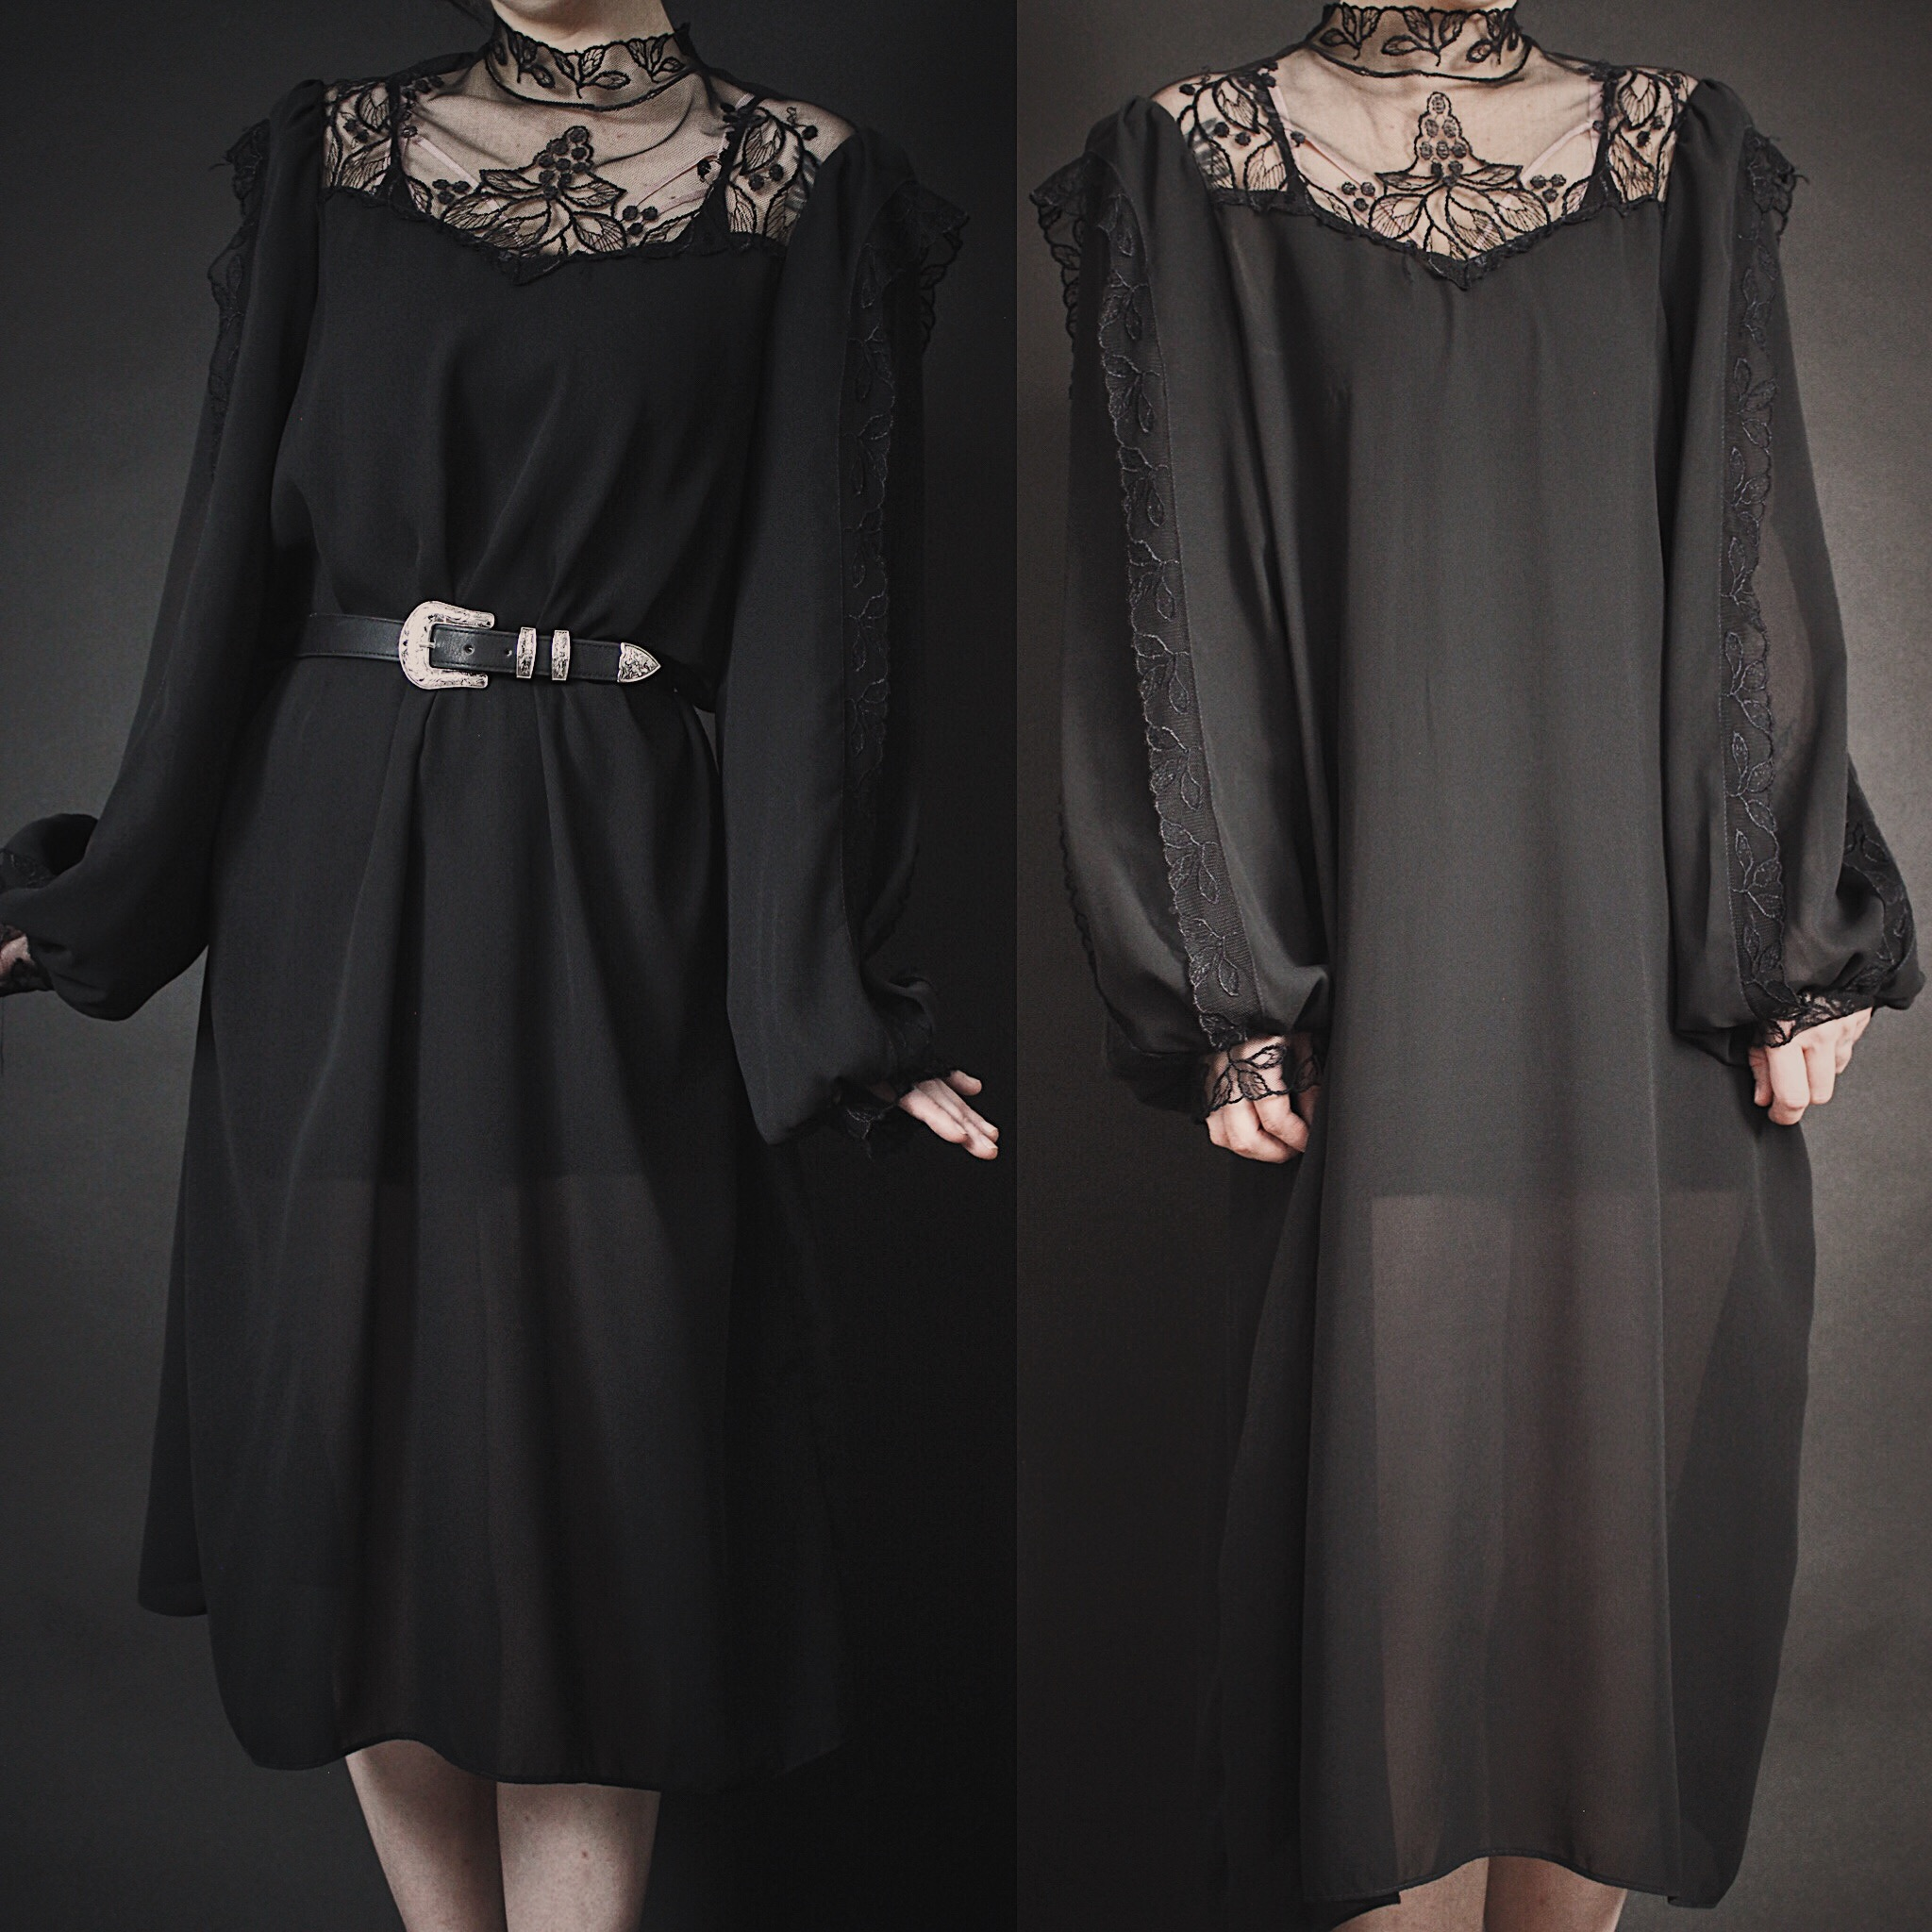 90d4bc030d99 ... RESERVED FOR MAXX - Vintage 80s Black Lace Victorian Inspired Dress -  Thumbnail 2